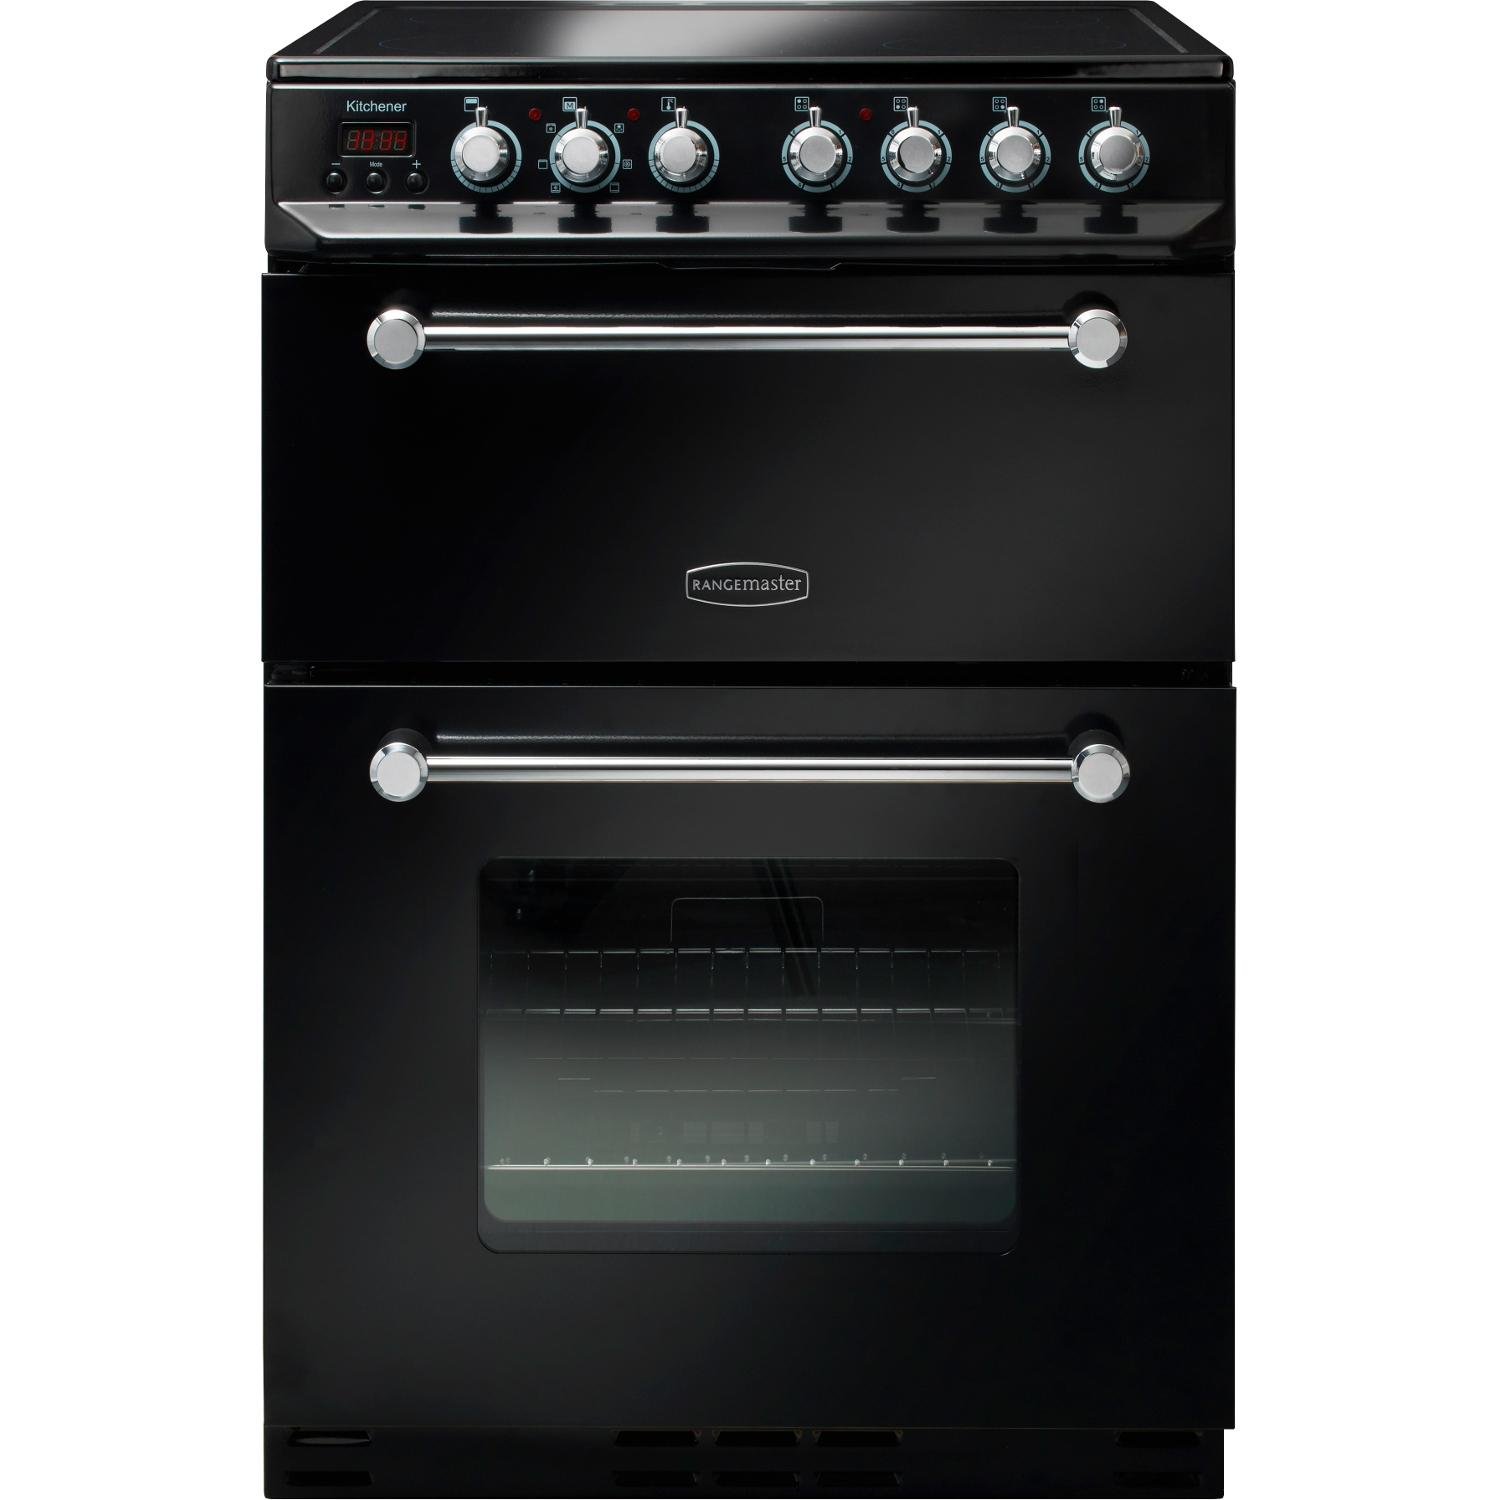 Rangemaster KCH60ECBL/C Kitchener 60 Black with Chrome Trim Ceramic Electric Cooker with Double Oven